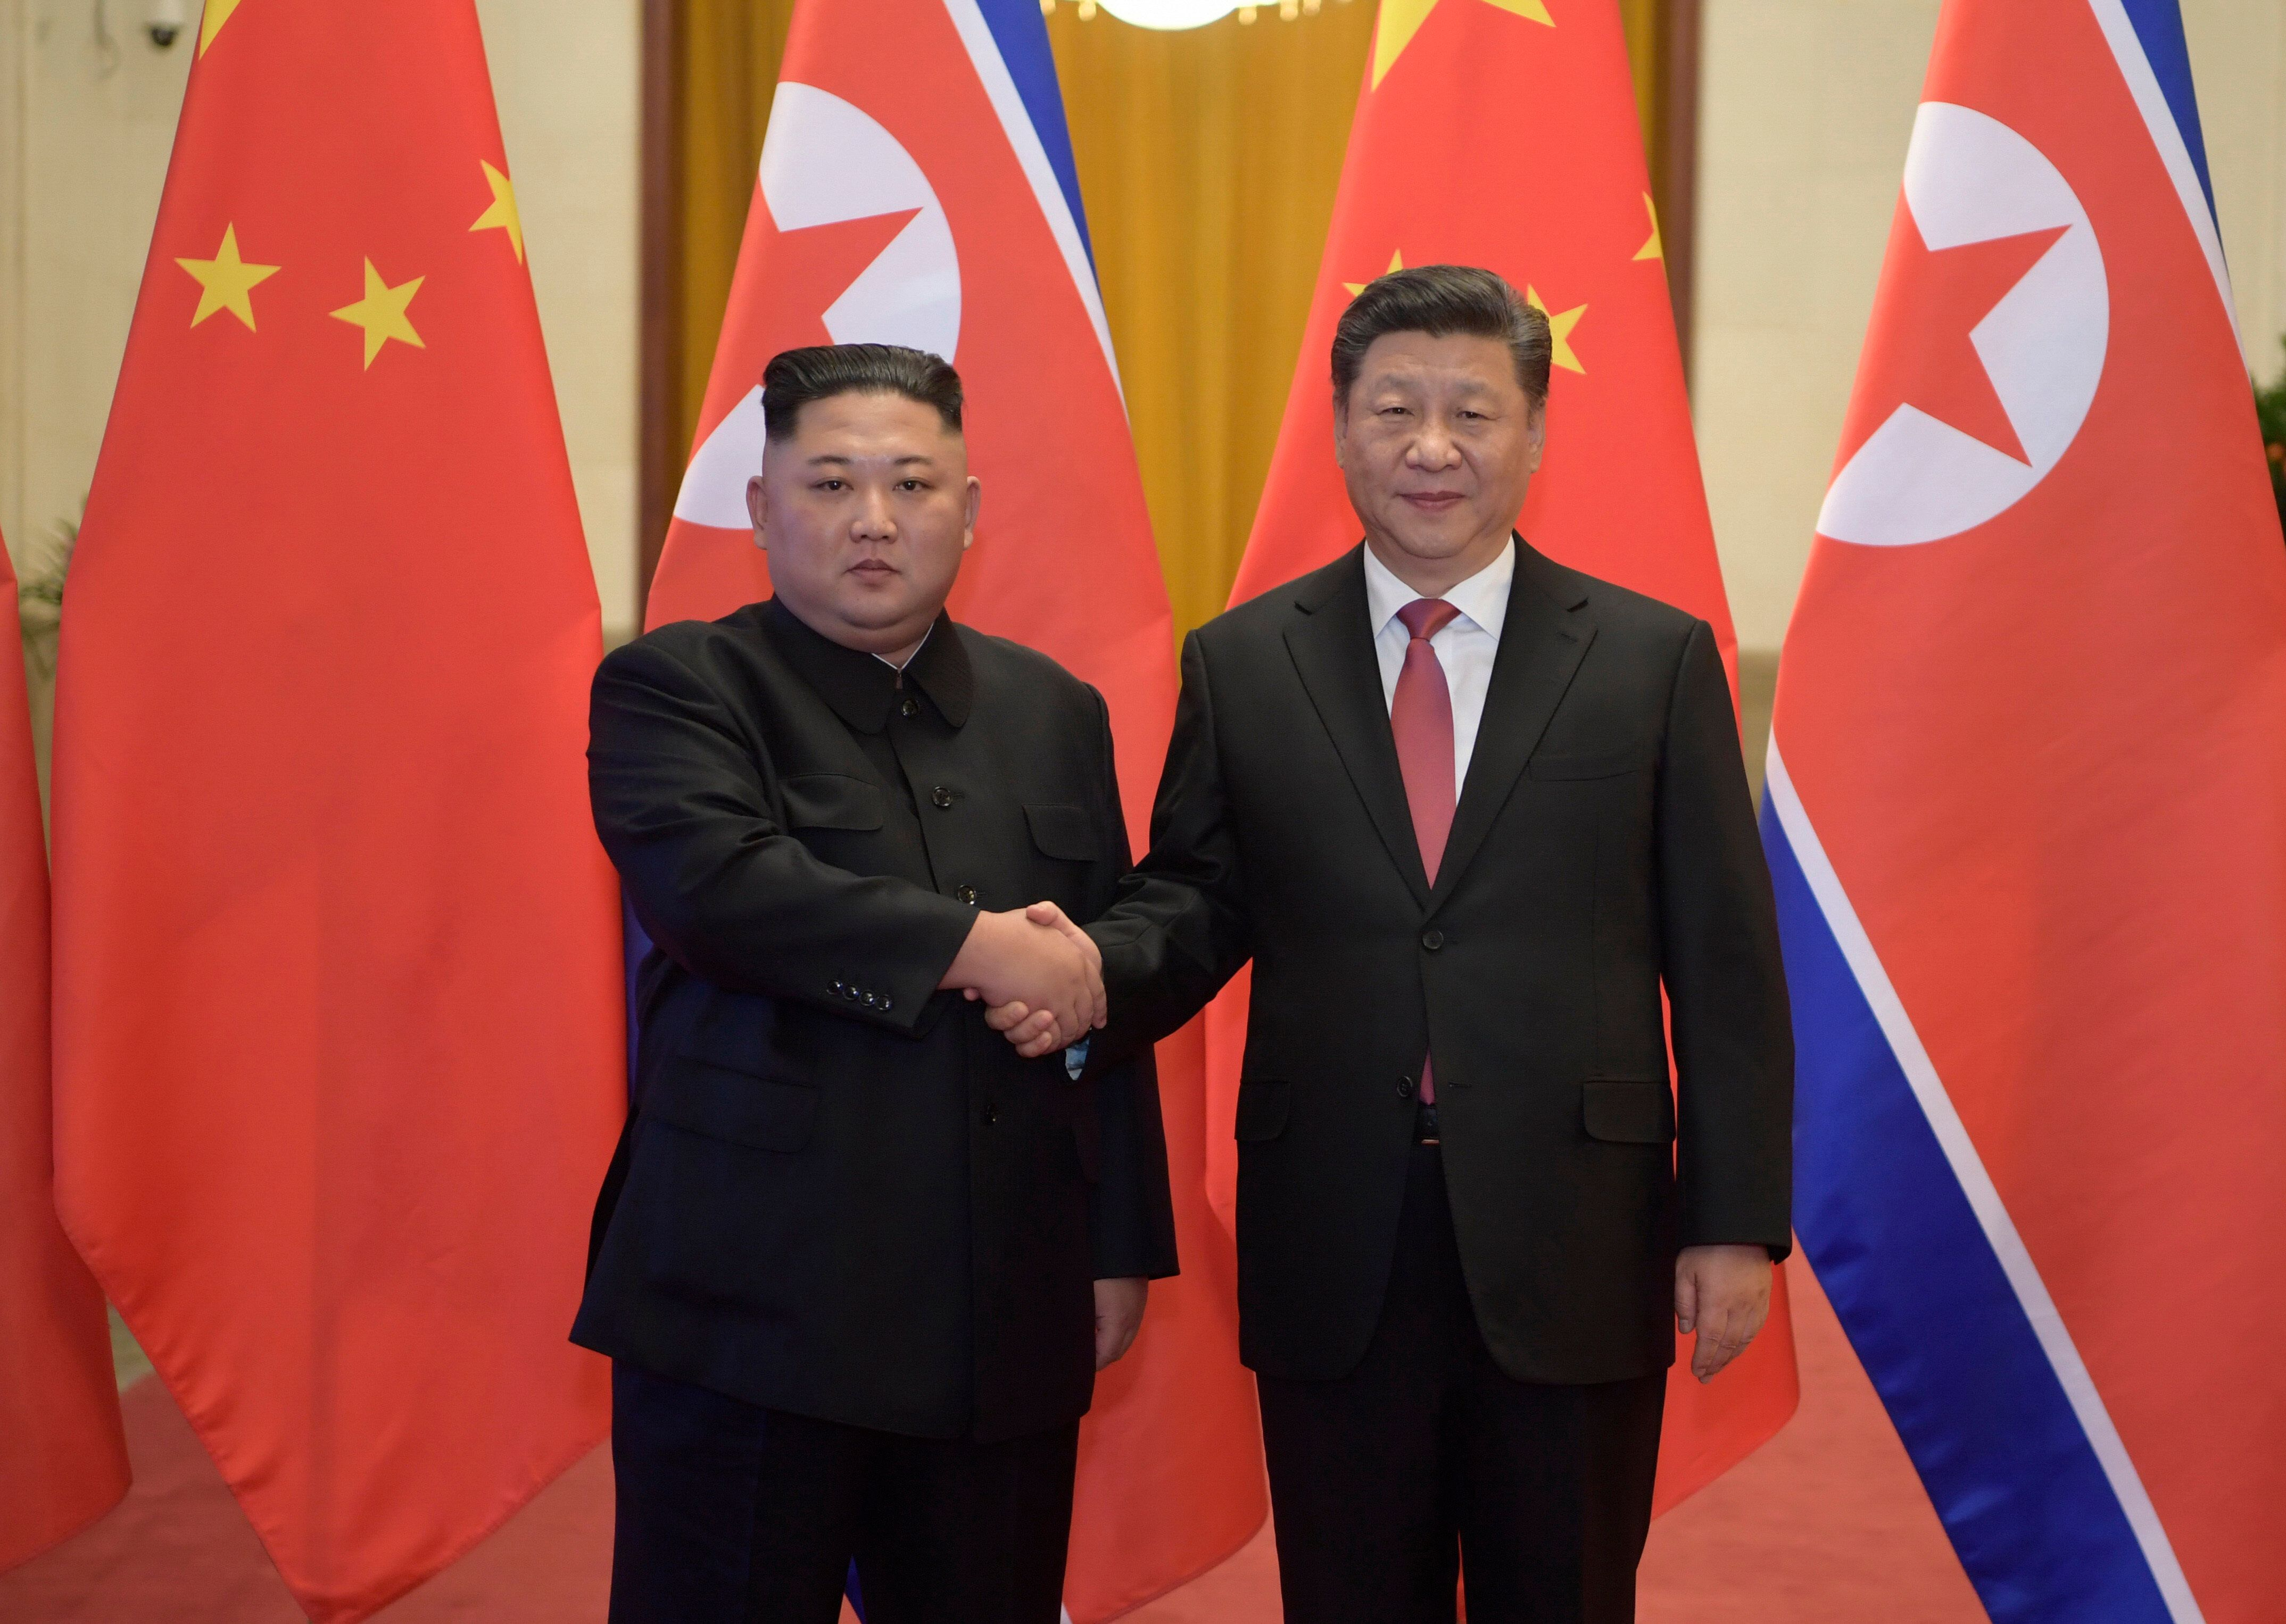 North Korean leader Kim Jong Un, left, and Chinese President Xi Jinping shake hands as they pose for a photo before talks at